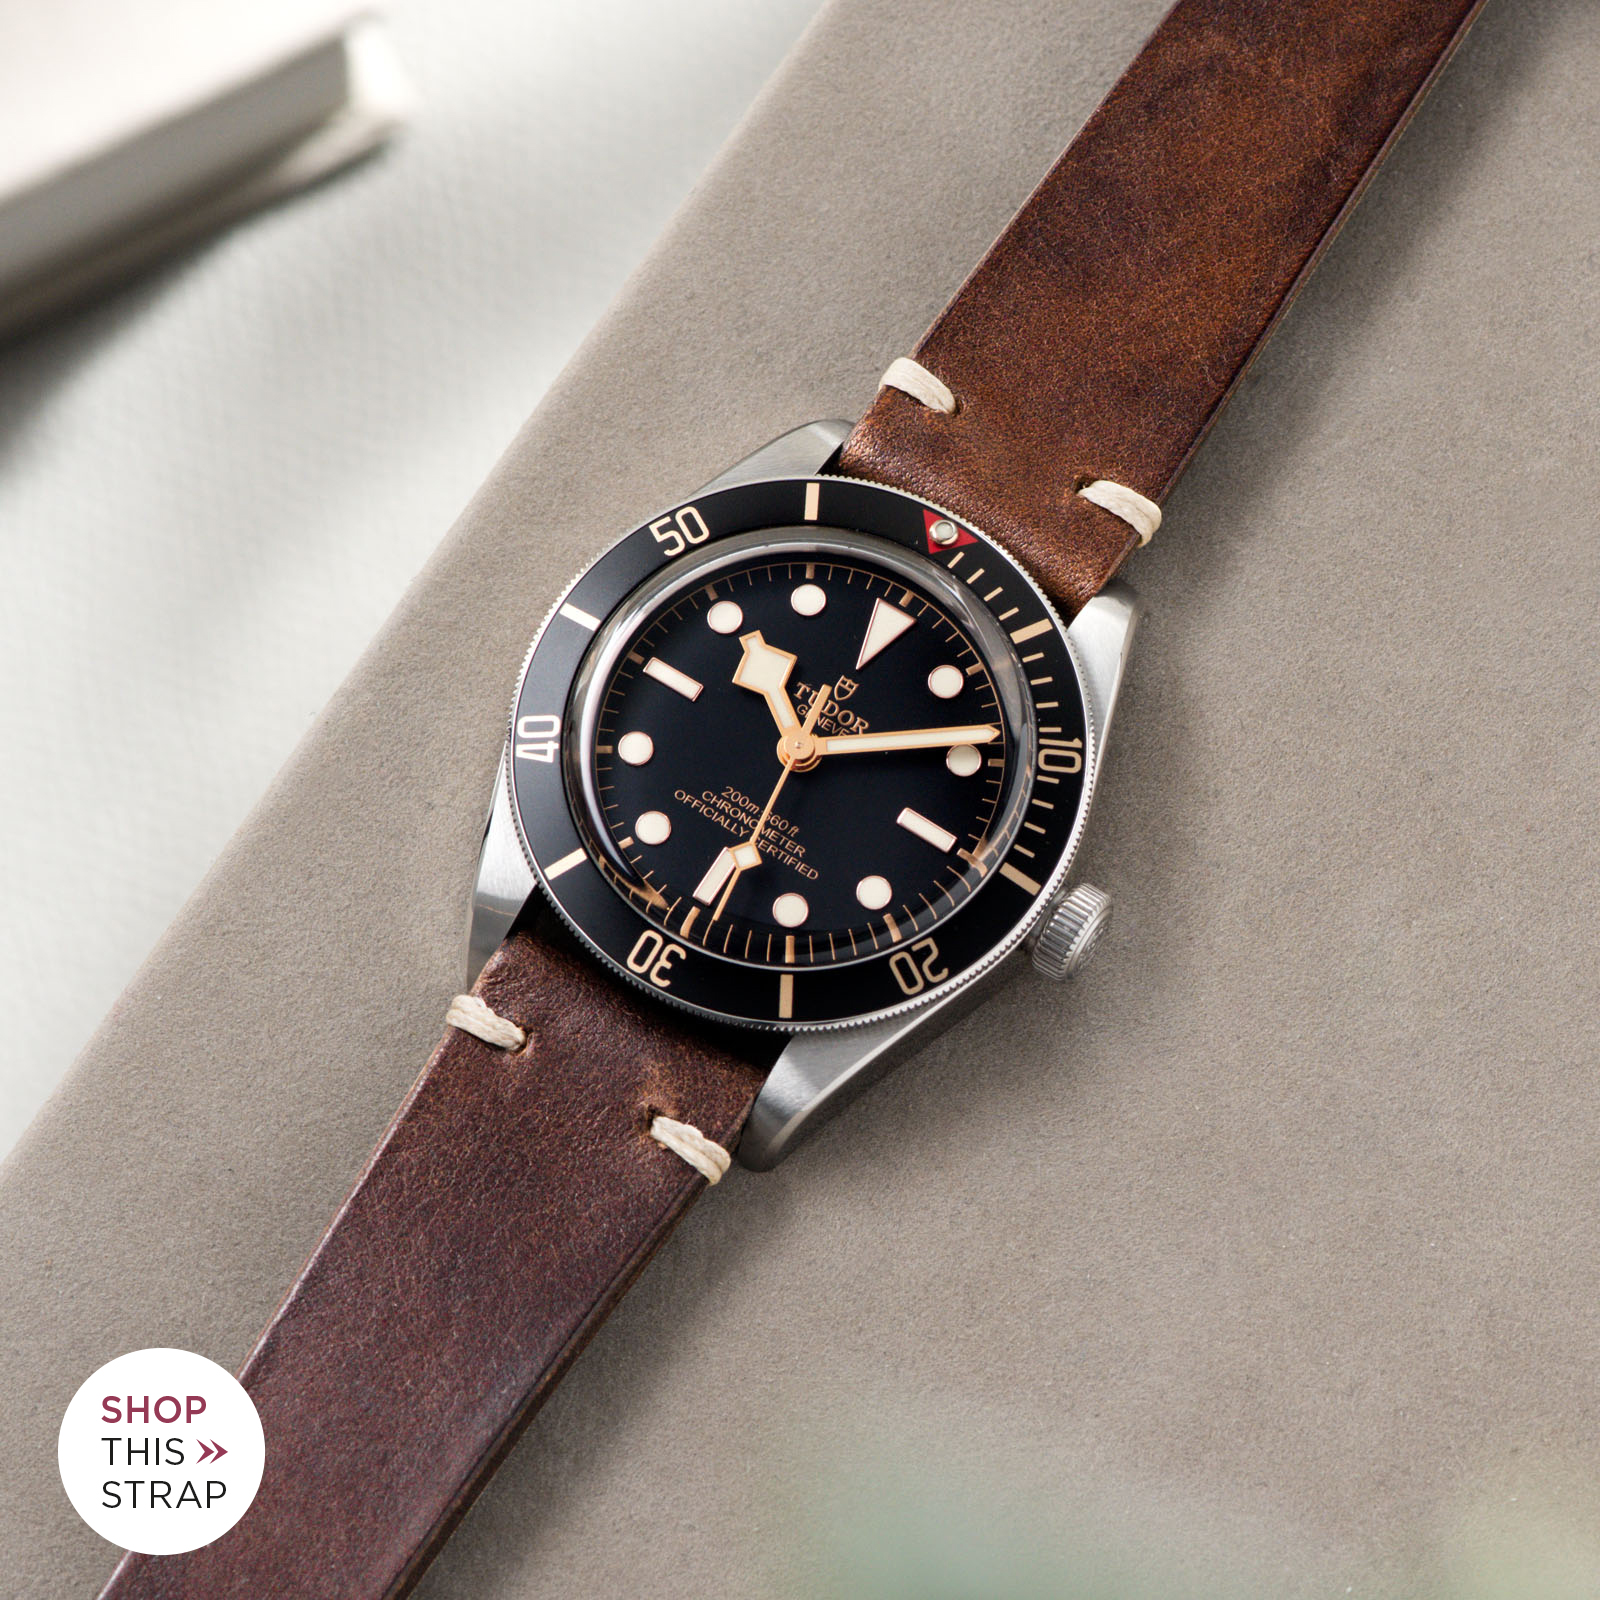 Bulang and Sons_Strap Guide_Tudor Black Bay 58_Lumberjack Brown Leather Watch Strap